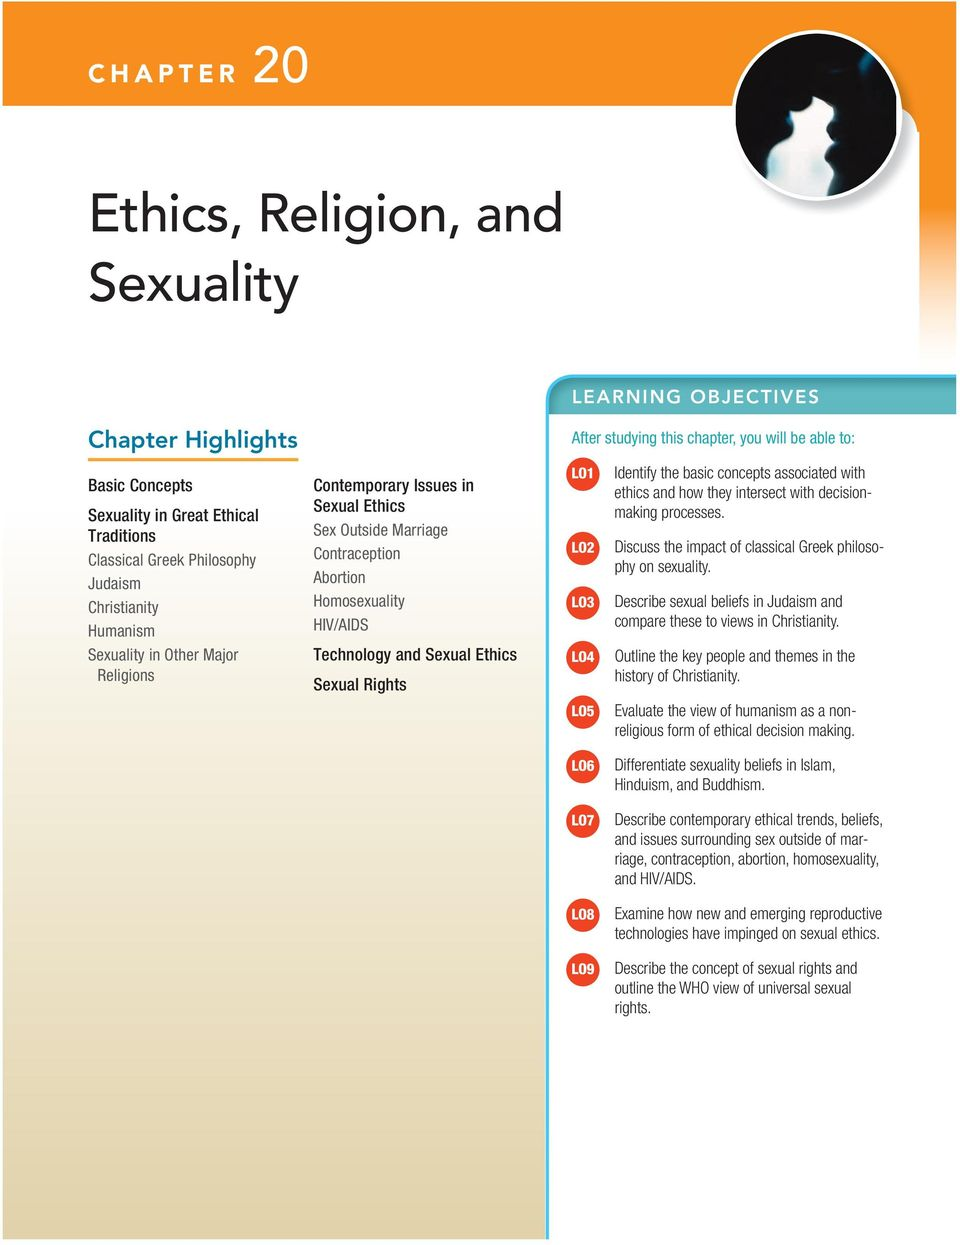 Contemporary sexual ethics